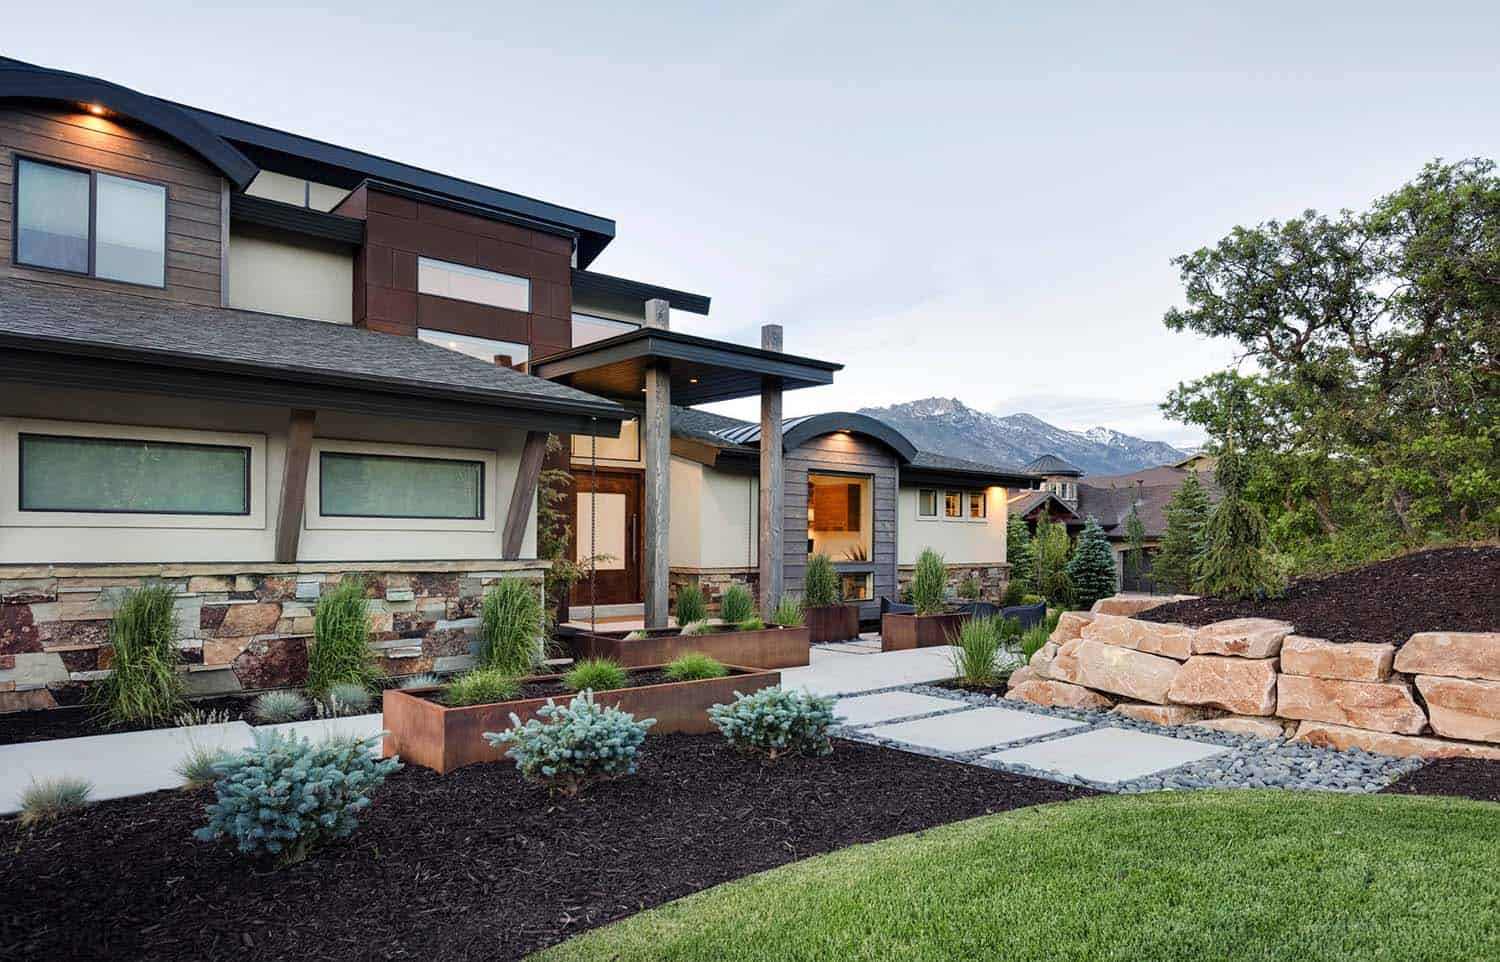 Luminous home in utah blending rustic and modern details Modern homes in utah